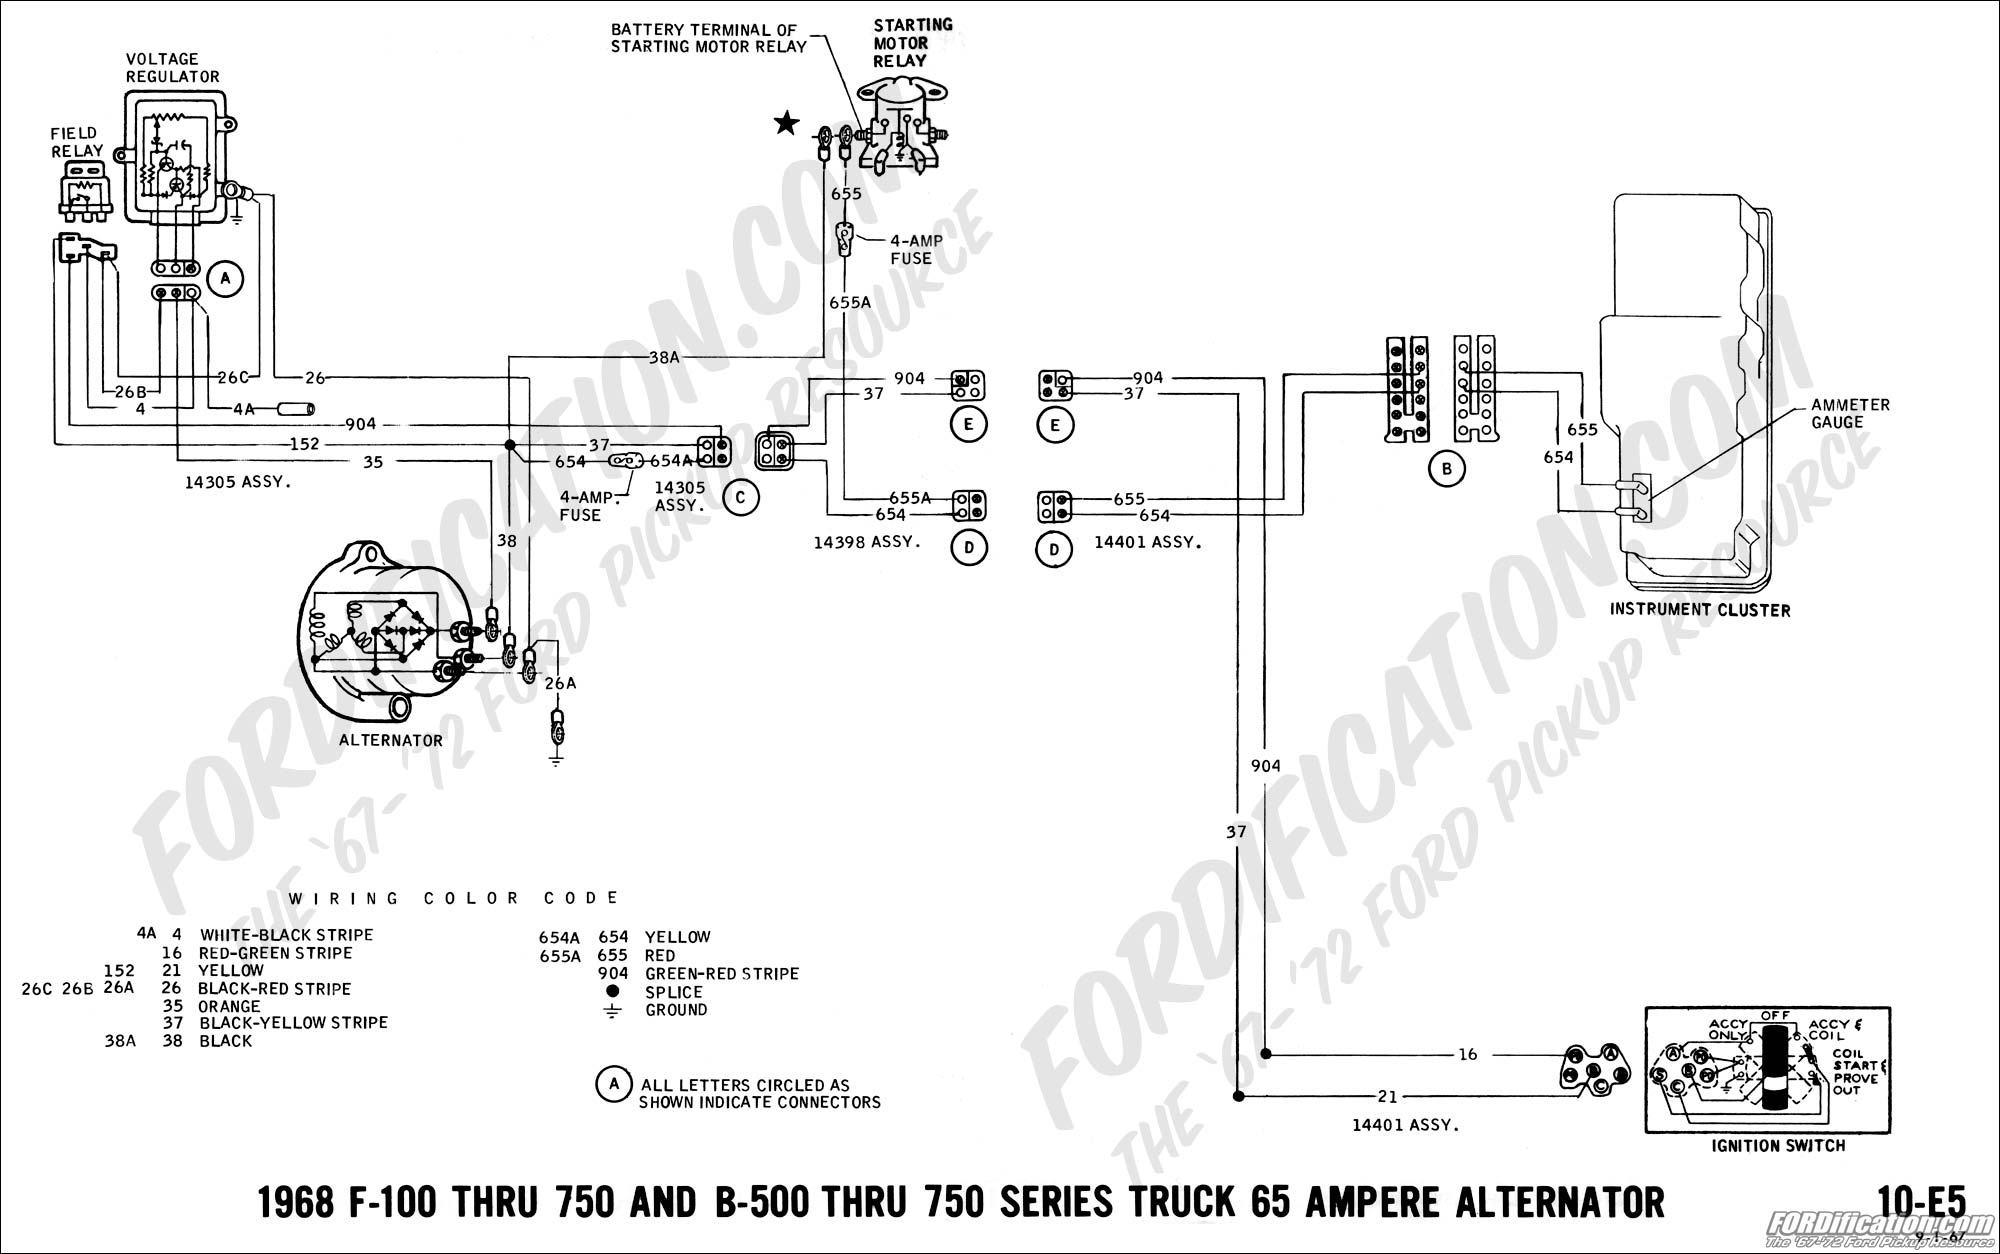 hight resolution of 1972 f150 ignition wiring diagram wiring diagram compilation 1972 ford f100 ignition switch wiring diagram 1972 ford f250 ignition wiring diagram